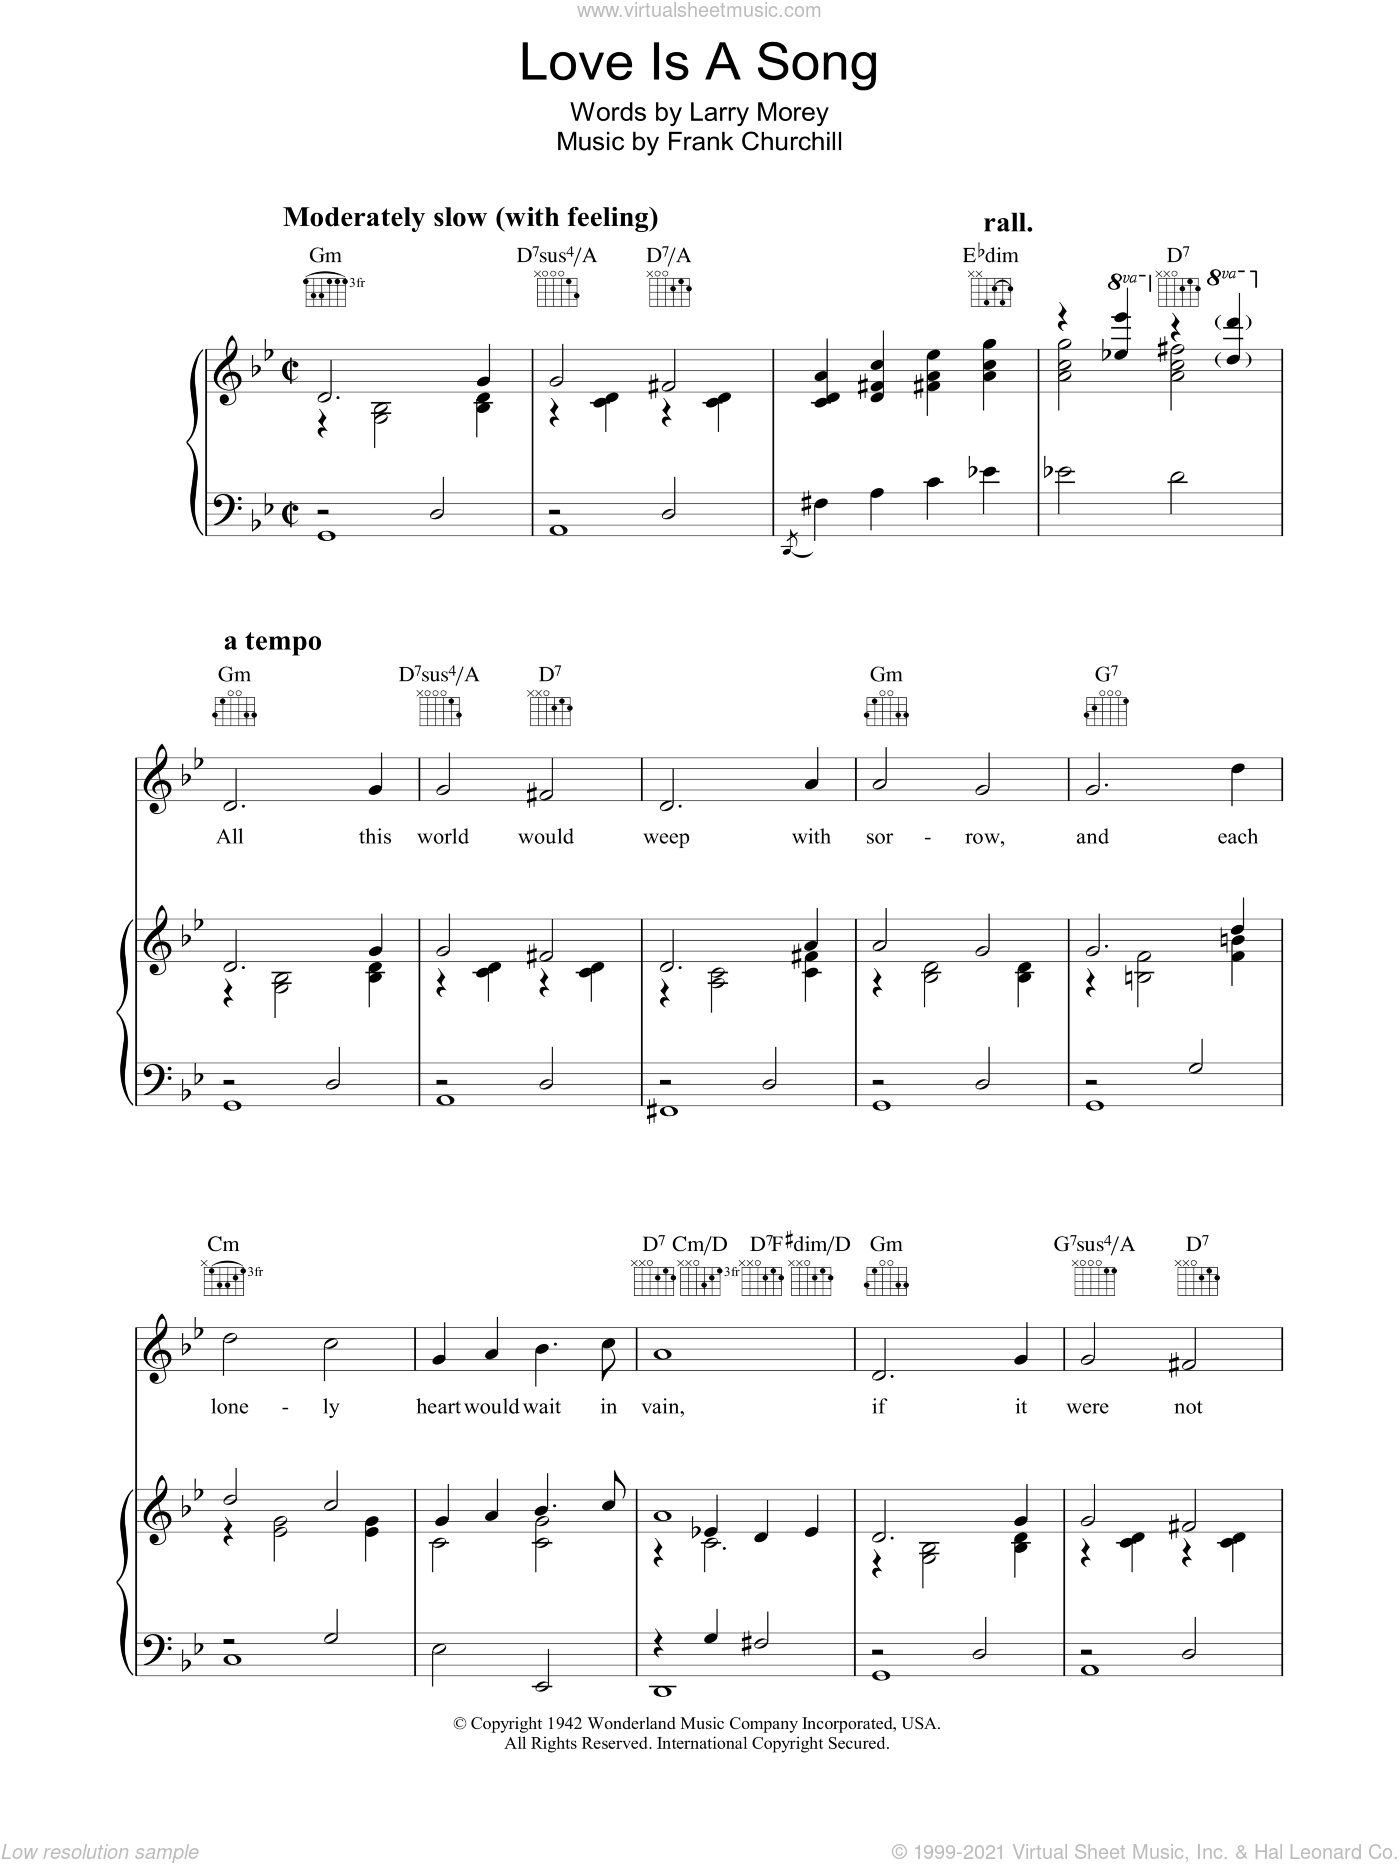 Love Is A Song (from Walt Disney's Bambi) sheet music for voice, piano or guitar by Frank Churchill and Larry Morey, intermediate. Score Image Preview.